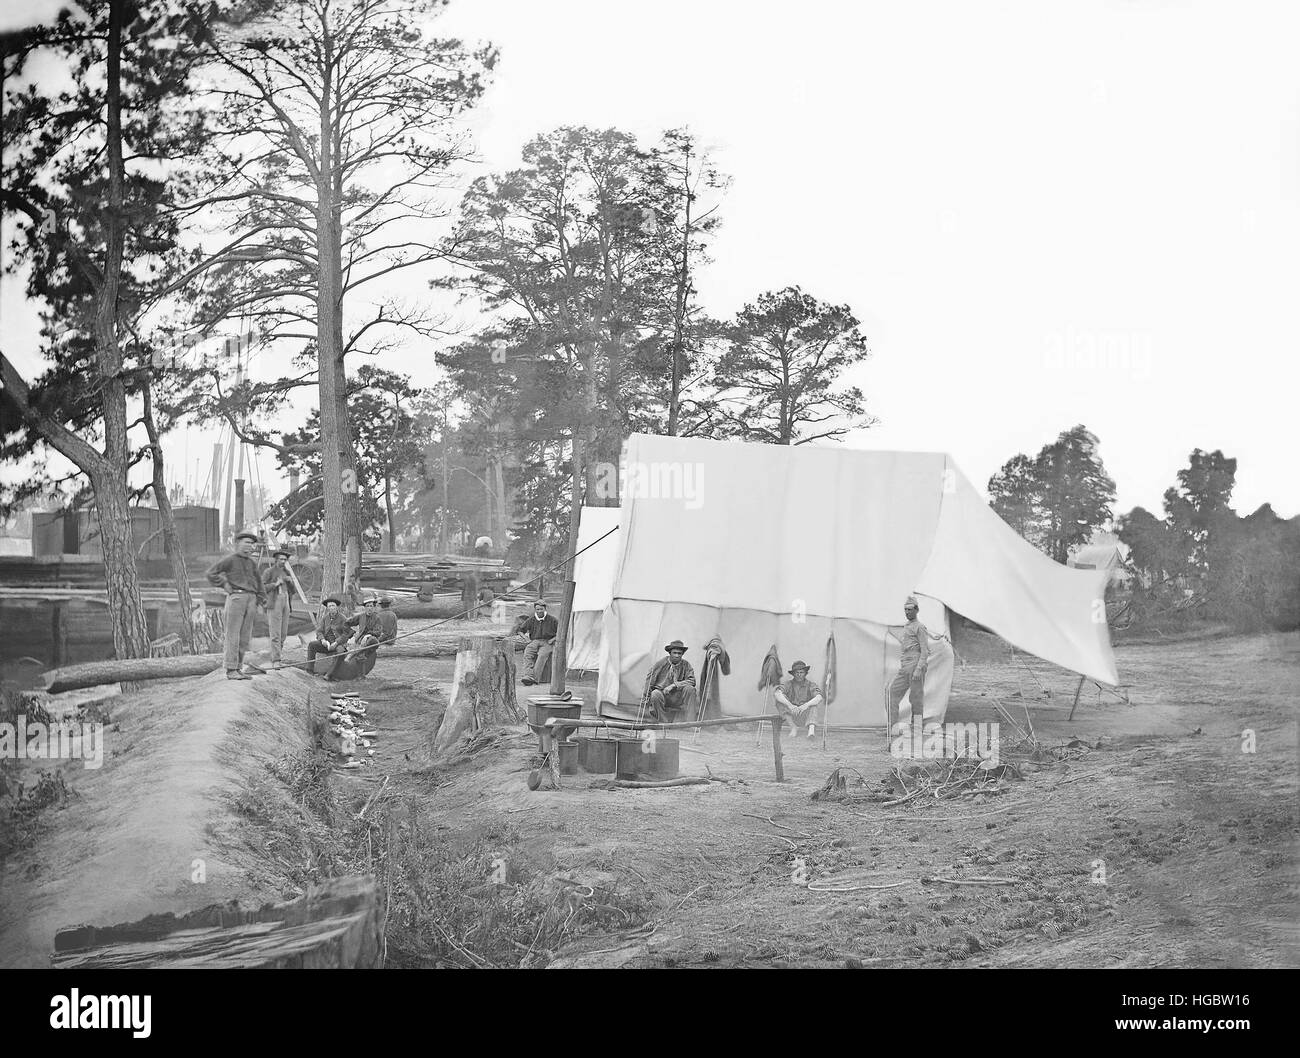 Camp scene showing cook's tent during the American Civil War. - Stock Image